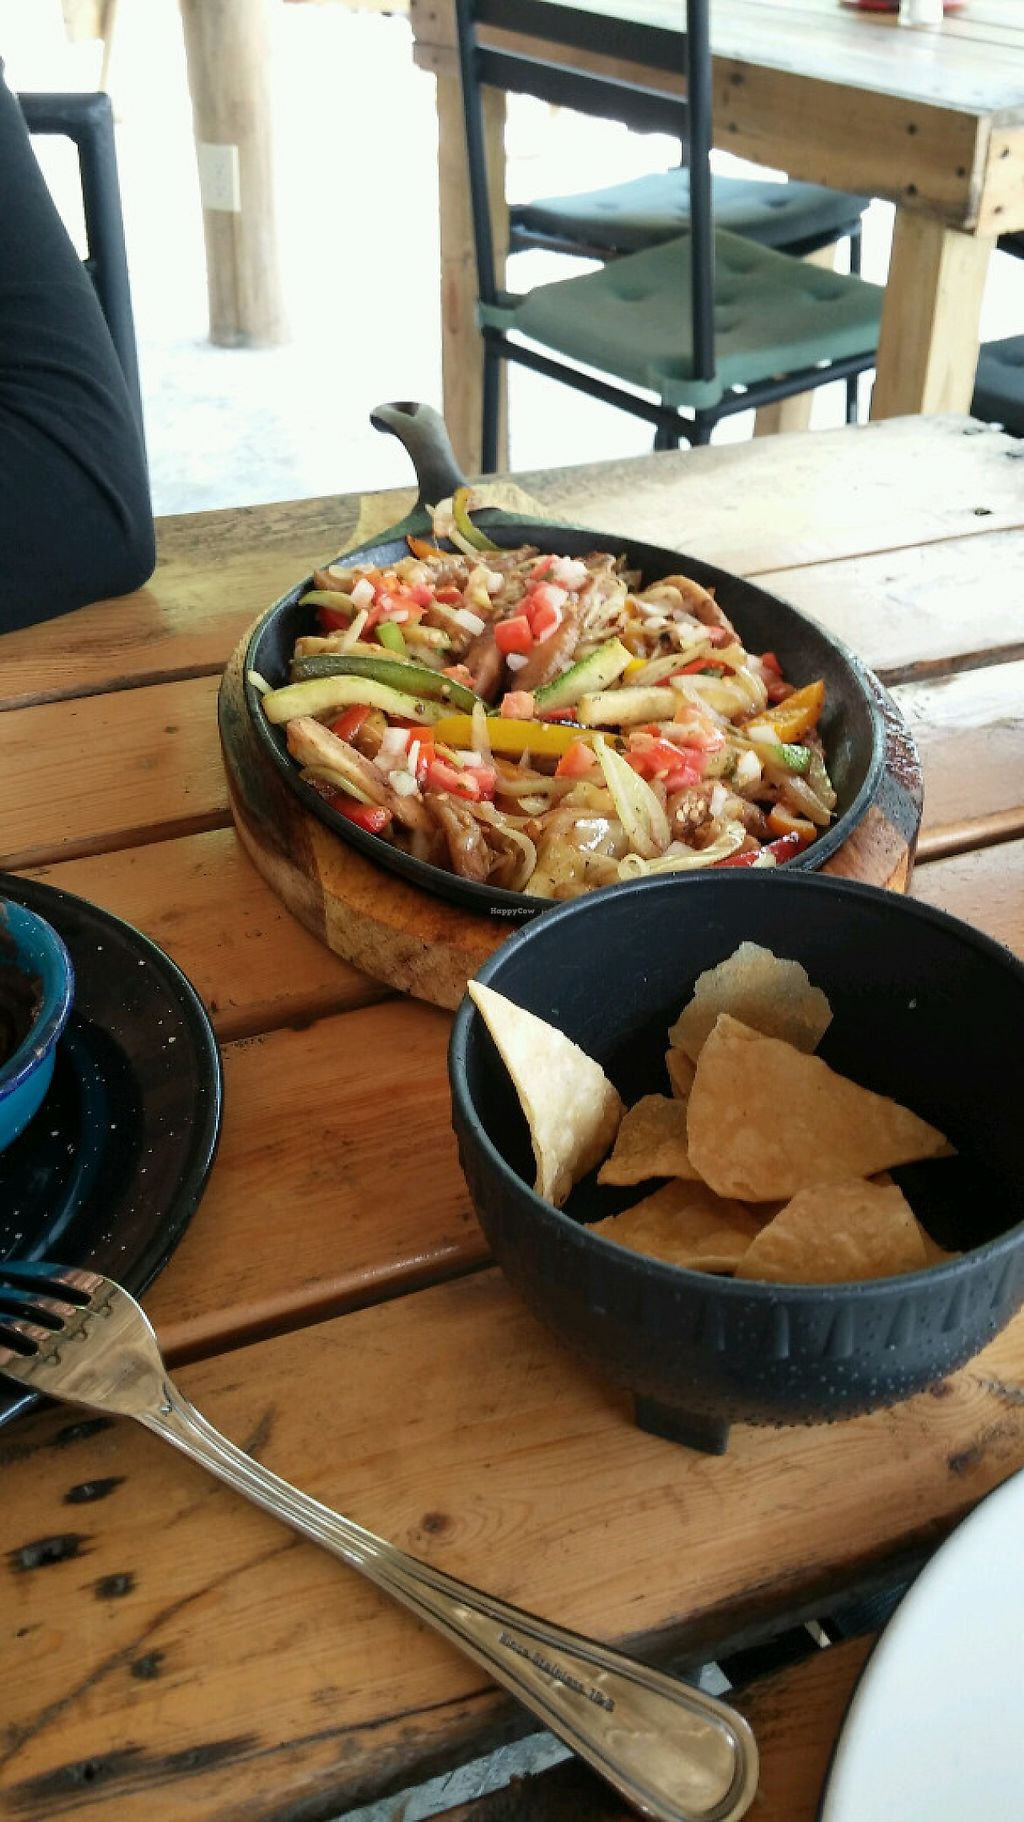 "Photo of Wacamole  by <a href=""/members/profile/jasminebagha"">jasminebagha</a> <br/>If you order the fajitas, you get 5 corn tortillas and the vegetables (onions, bell pepper, zucchini, eggplant) come on a sizzling skillet.  <br/> May 26, 2017  - <a href='/contact/abuse/image/92791/262699'>Report</a>"